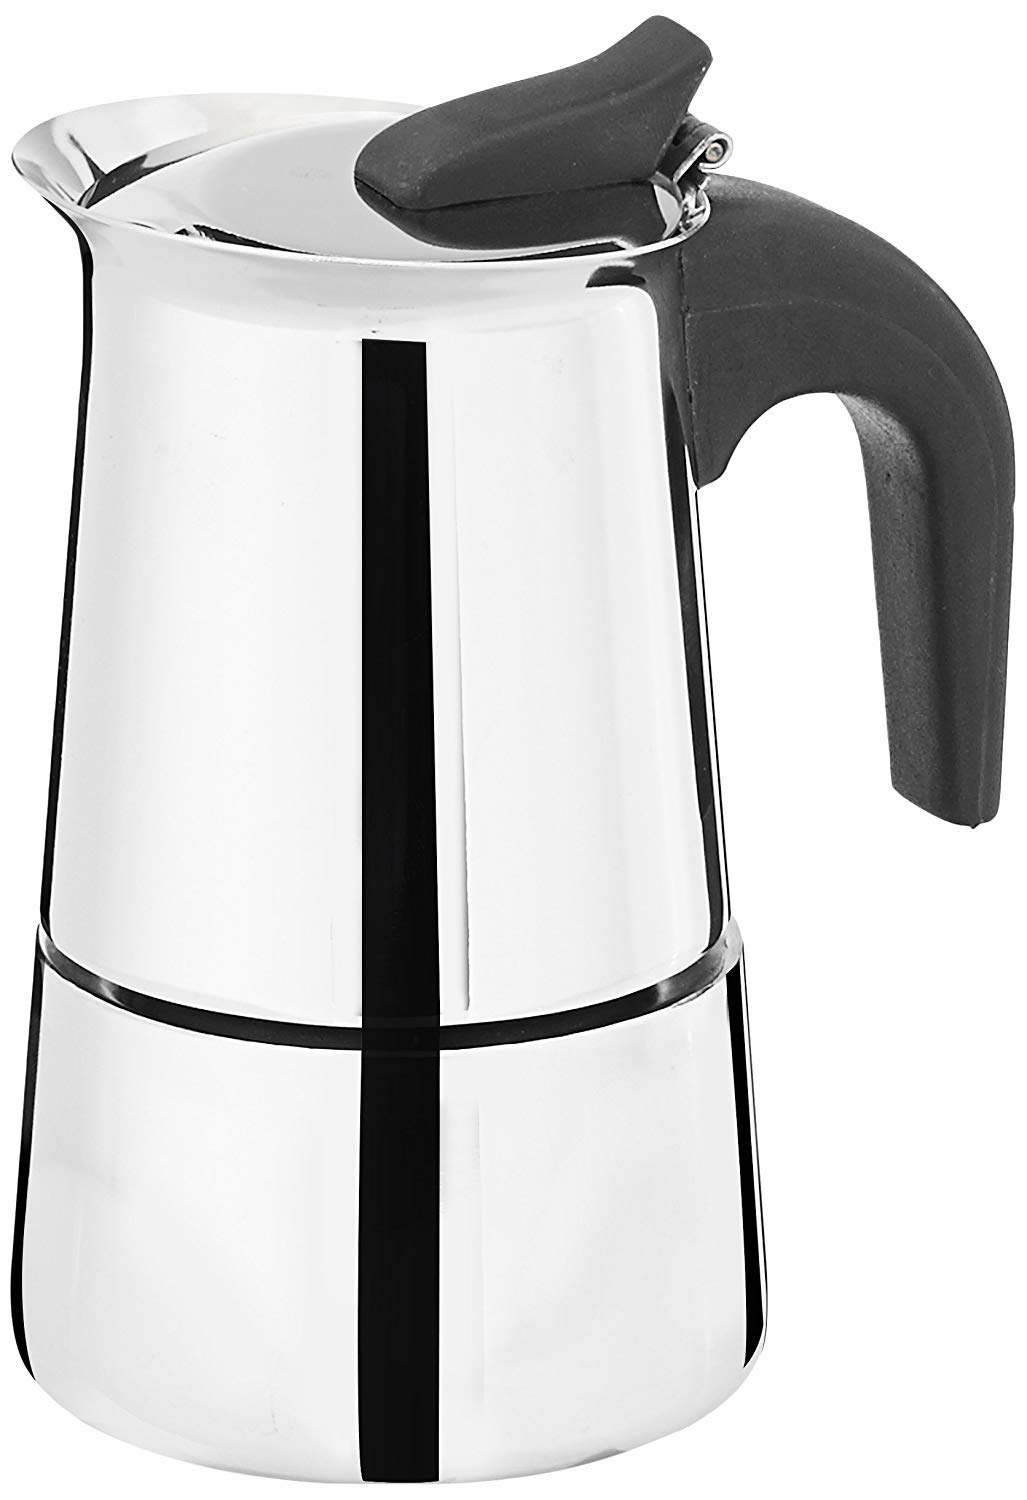 Embassy Stainless Steel Italian Coffee Percolator/Maker with Thick Gauge, 2 Cups